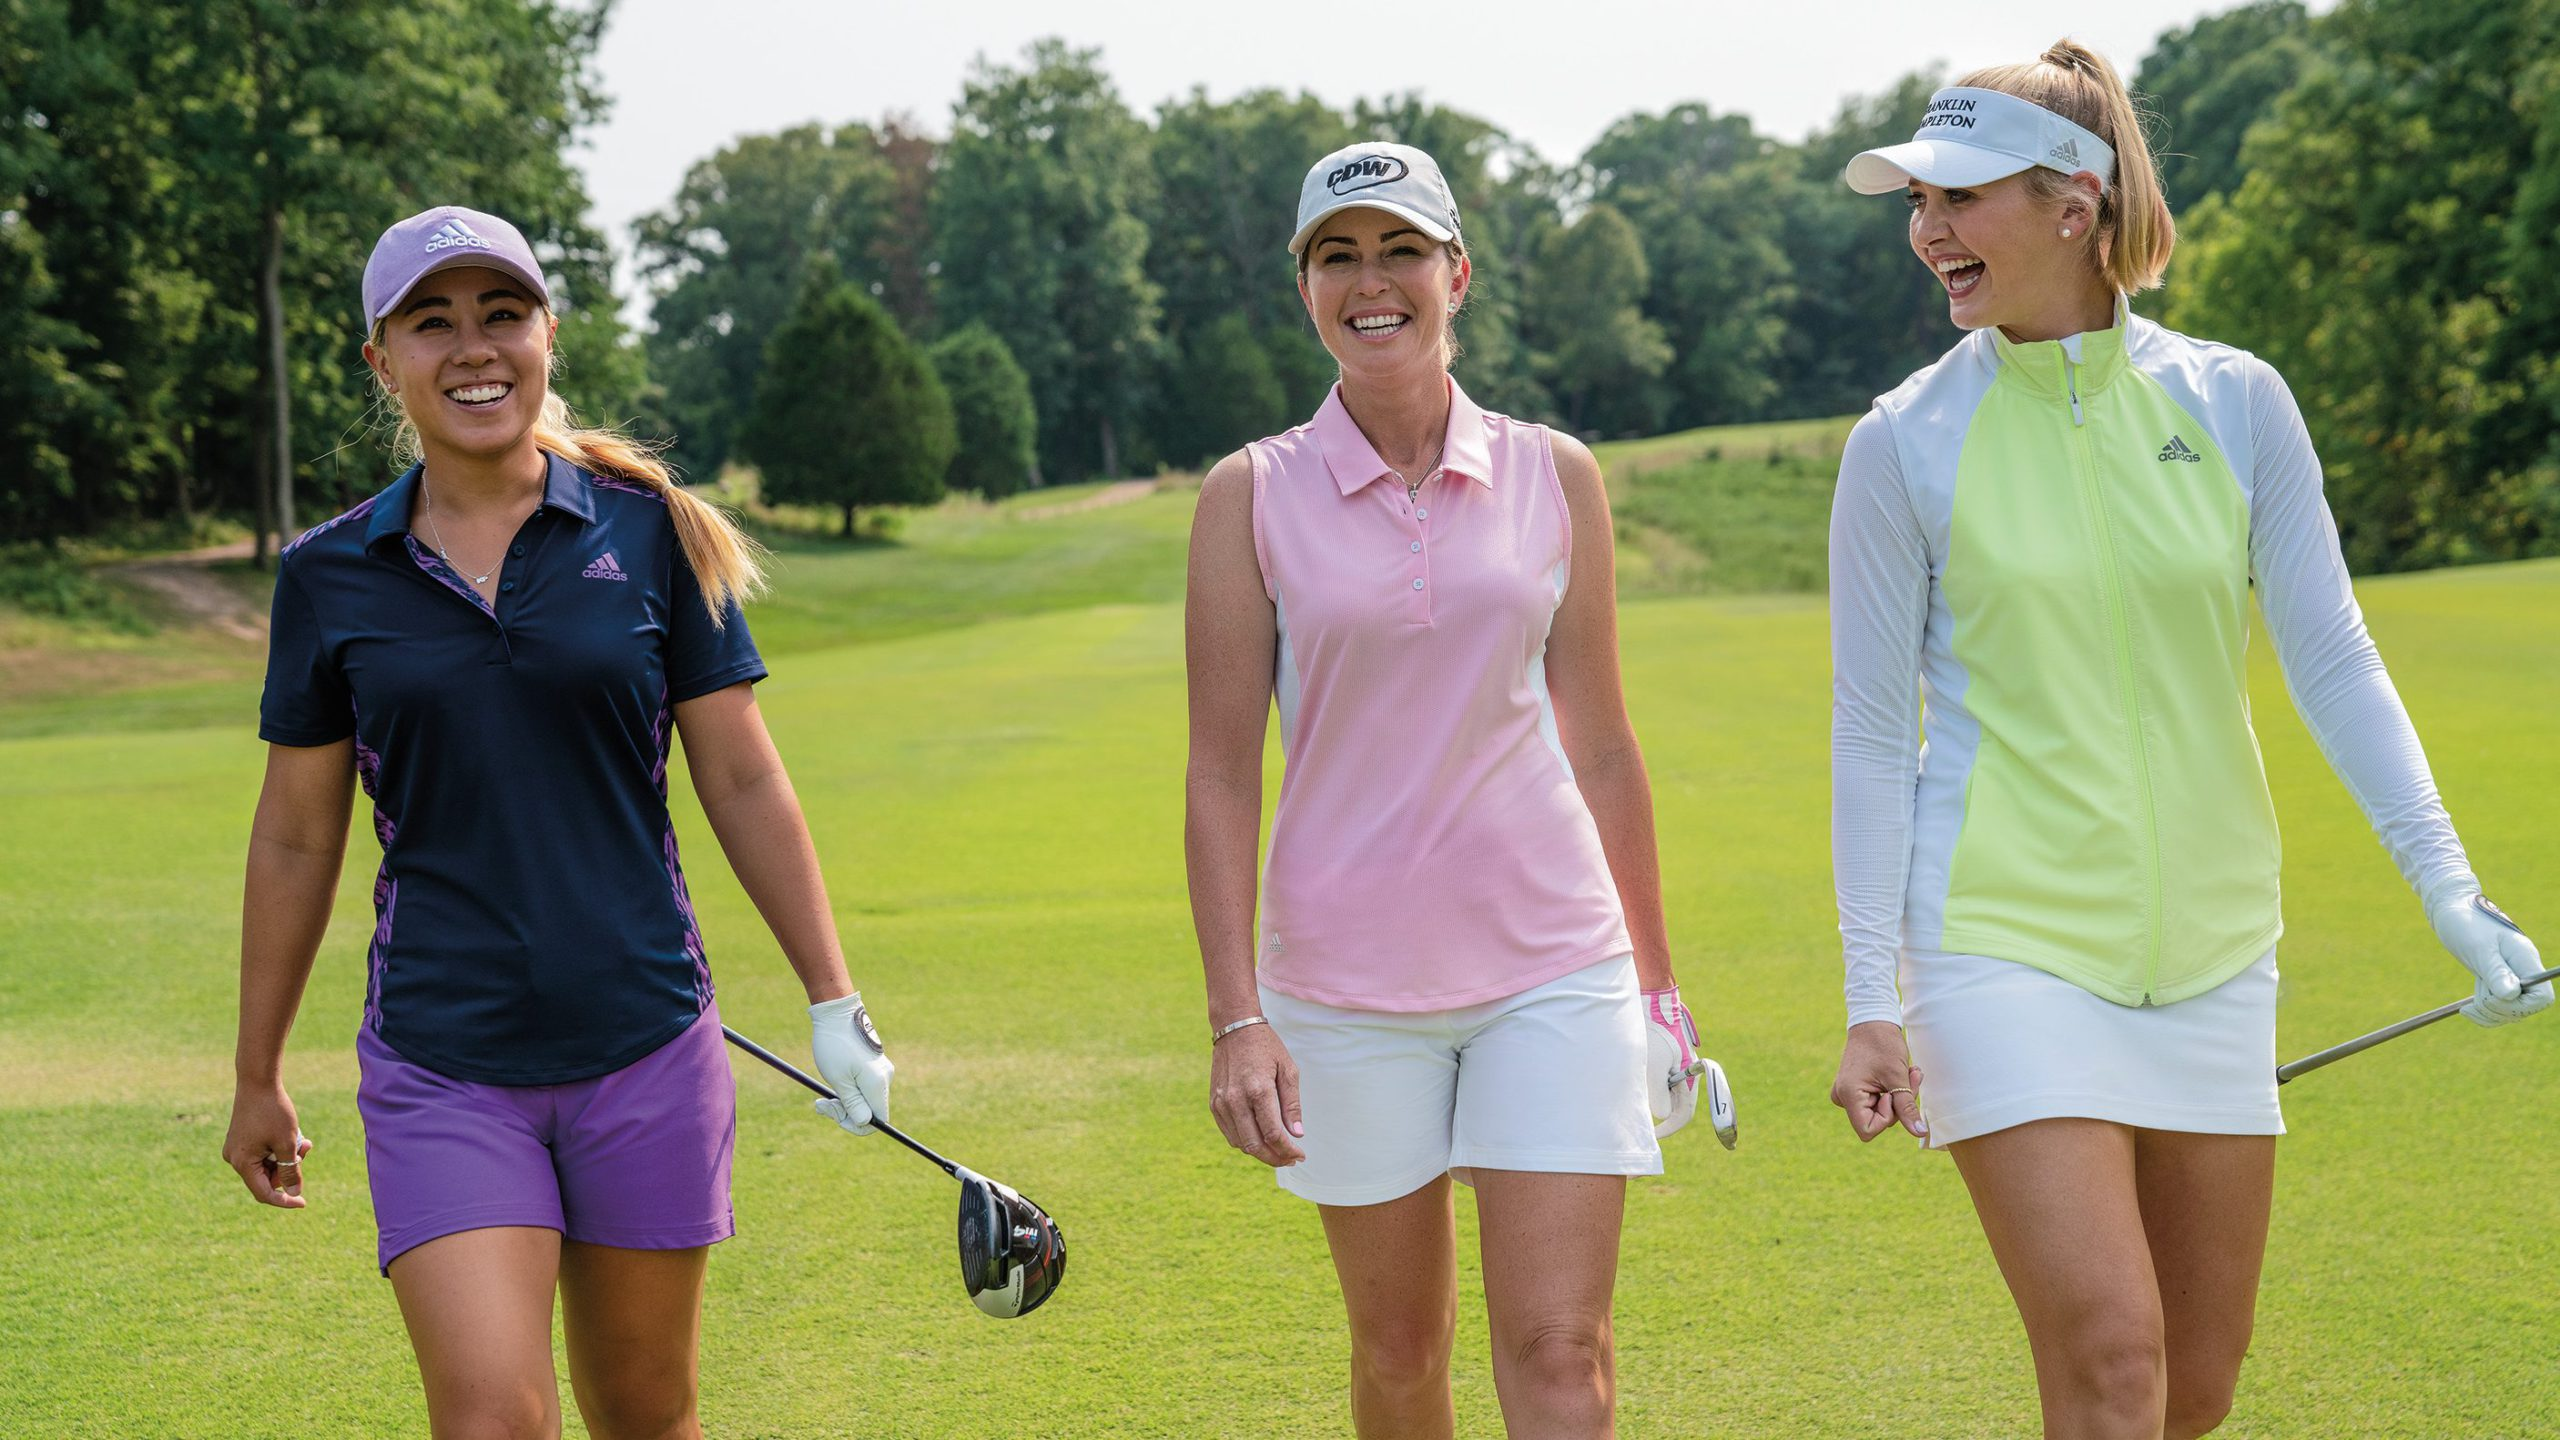 Stylish Women's Golf Clothing Can Make You Look Like a Million Dollars